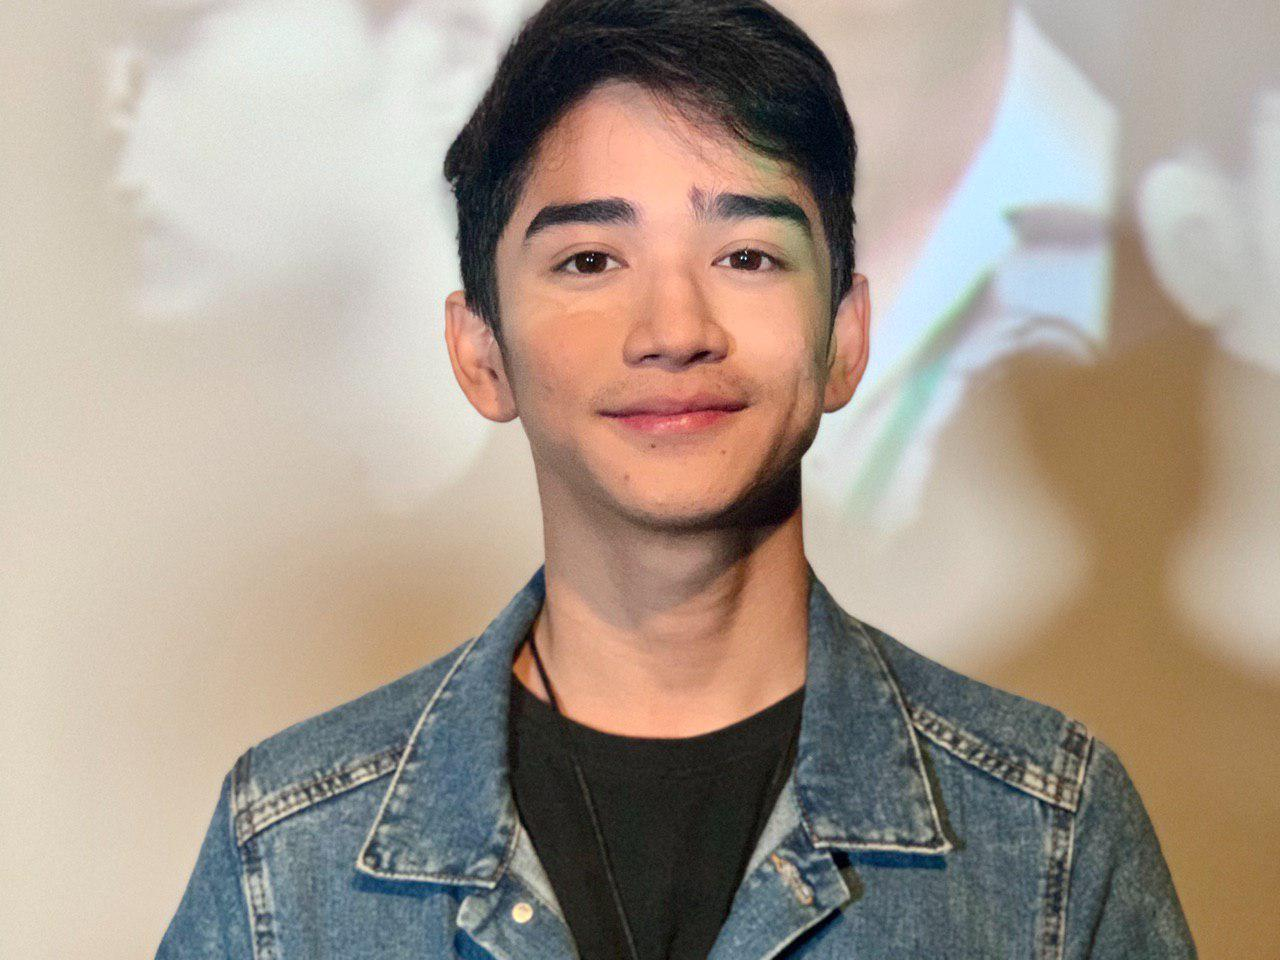 """Zaijian struggles with crippling depression in iWant's """"Story of My Life"""""""